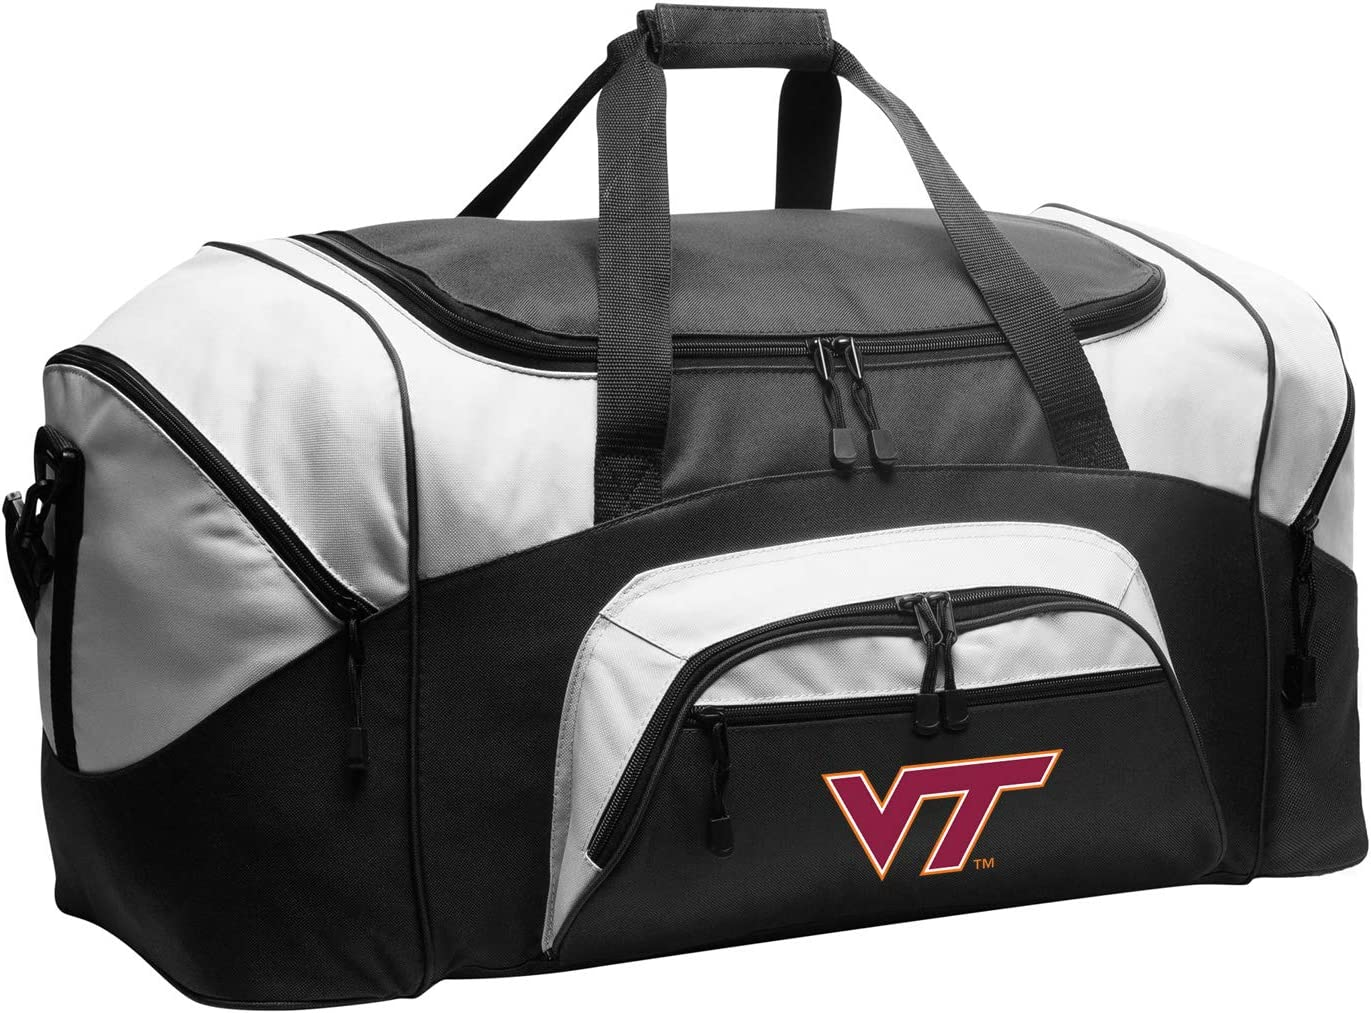 Large Virginia Tech Duffel Shipping included Bag Hokies Courier shipping free or Suitcase